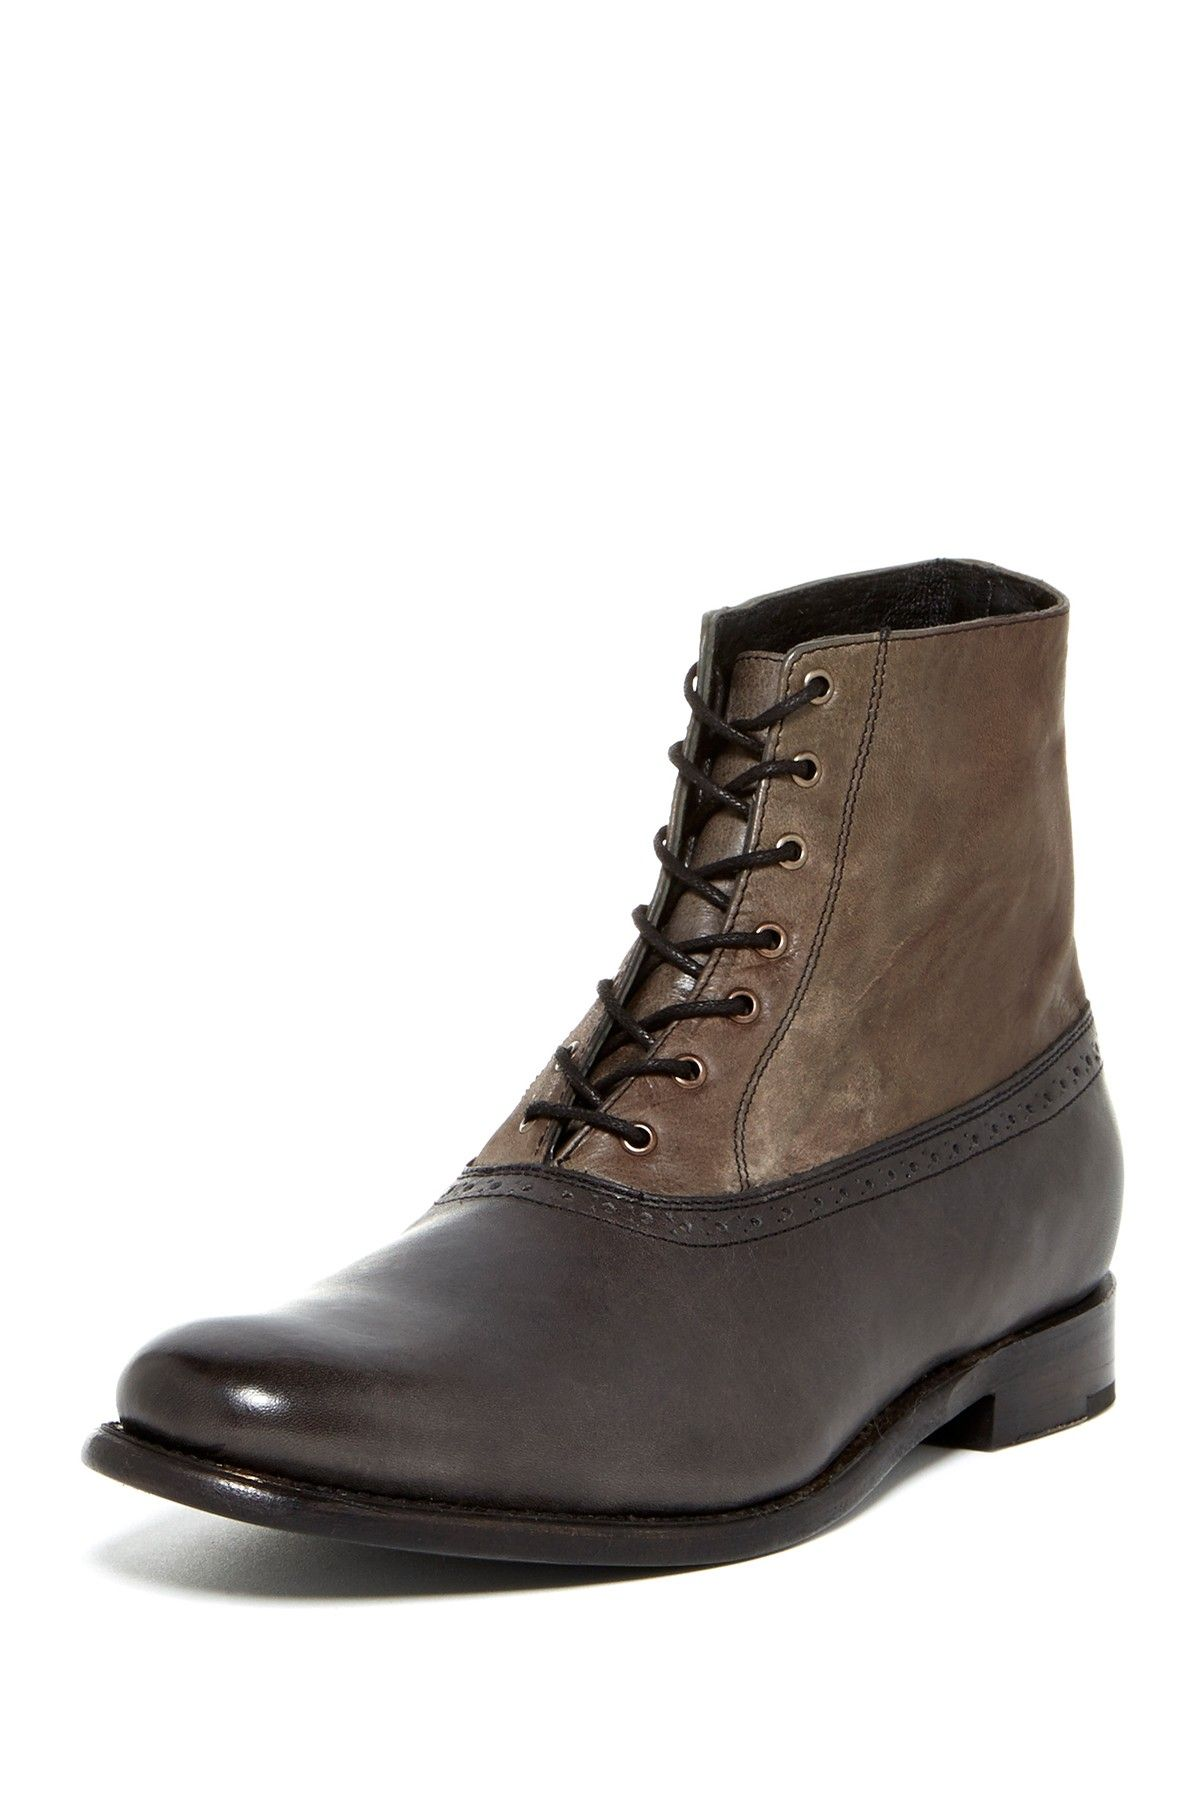 79badf61 Newcastle Lace-Up Boot | ✿MEN'S SHOES ... FASHIONABLE , CHIC AND ...